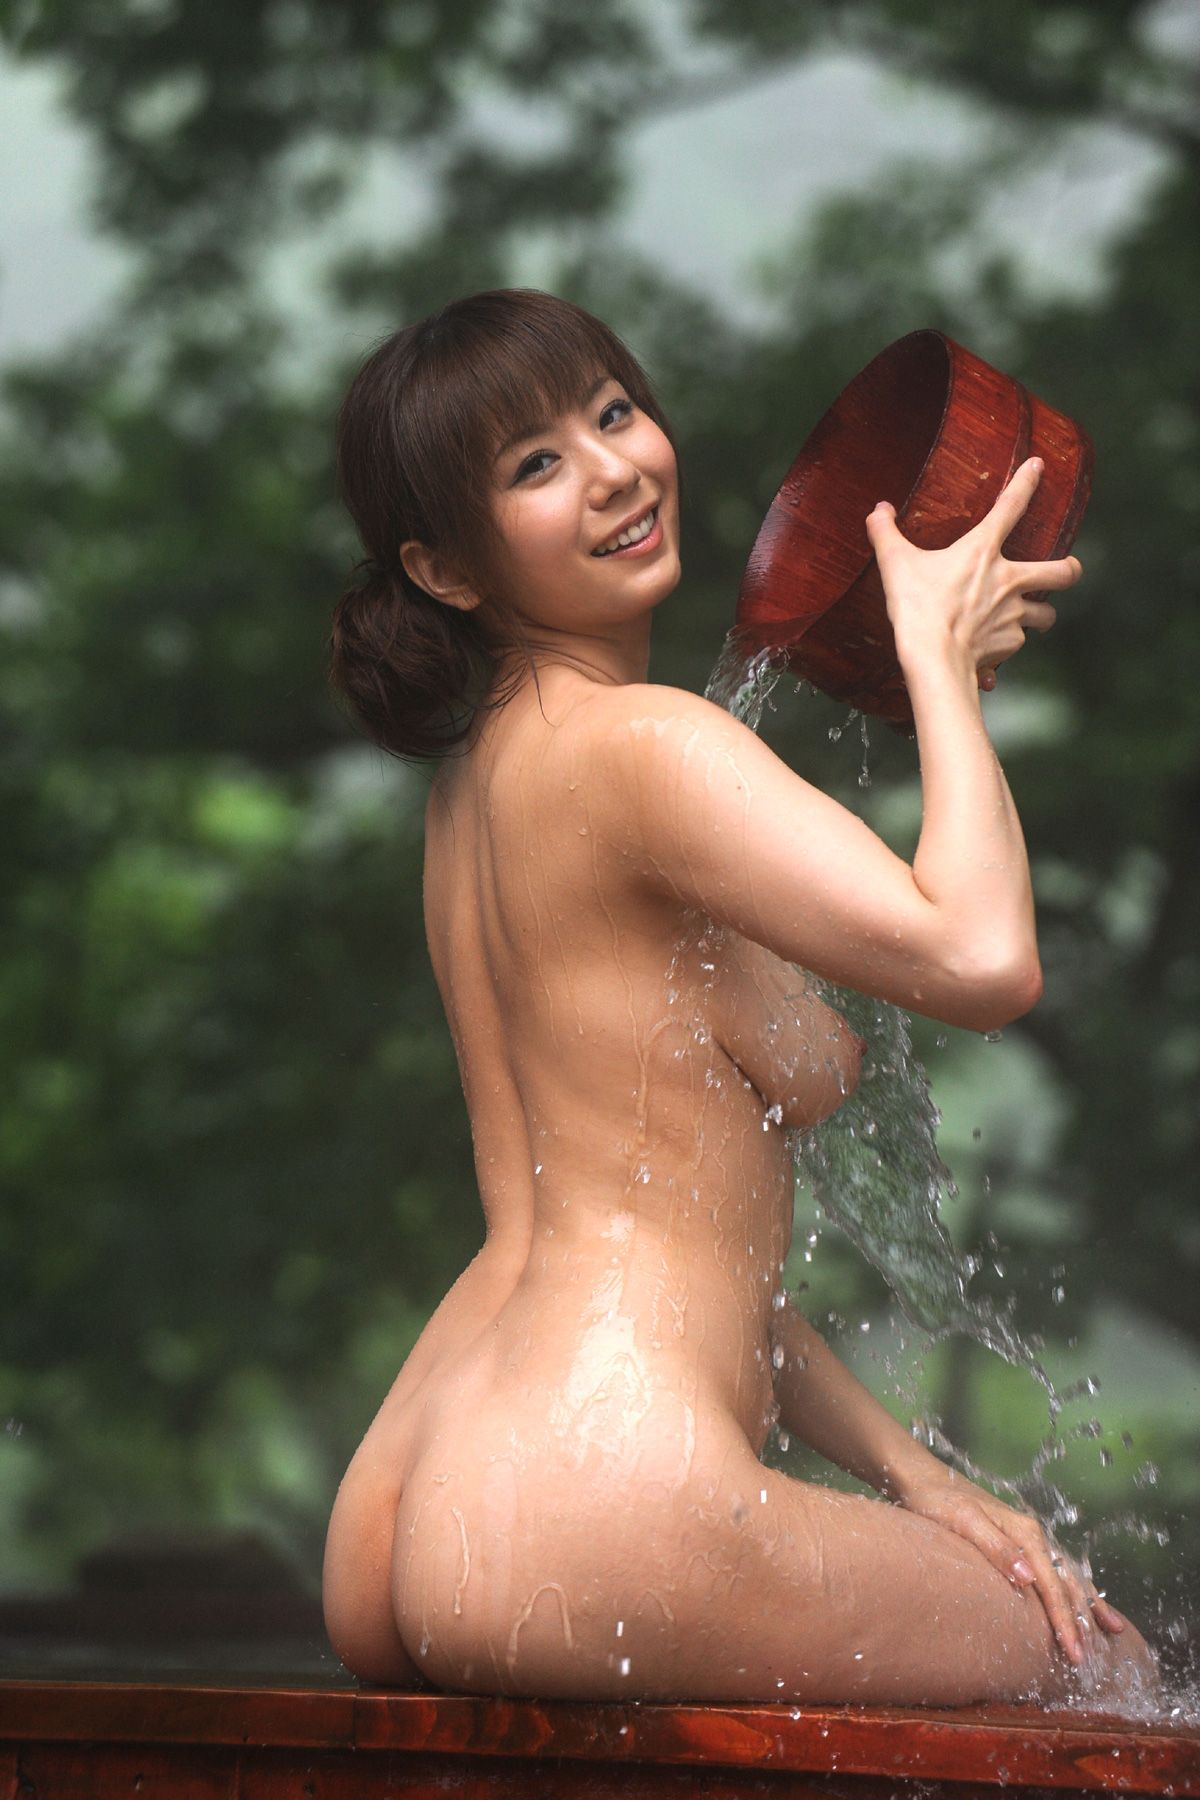 Sexy wet nude asian women — photo 2